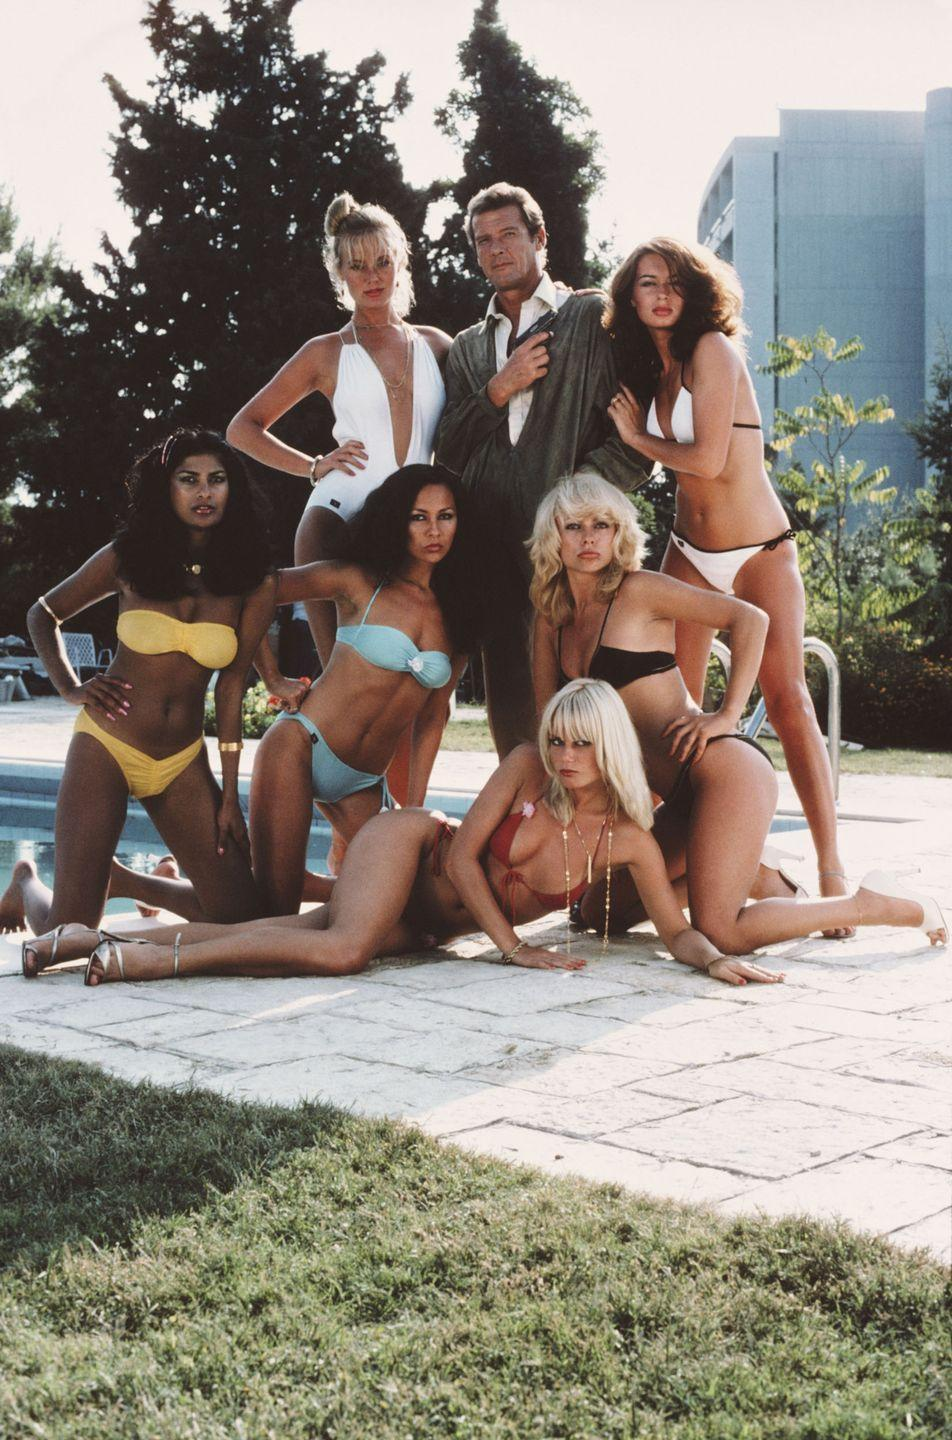 <p>Roger Moore as 007, surrounded by bikini-clad women in a publicity still for For Your Eyes Only.</p>